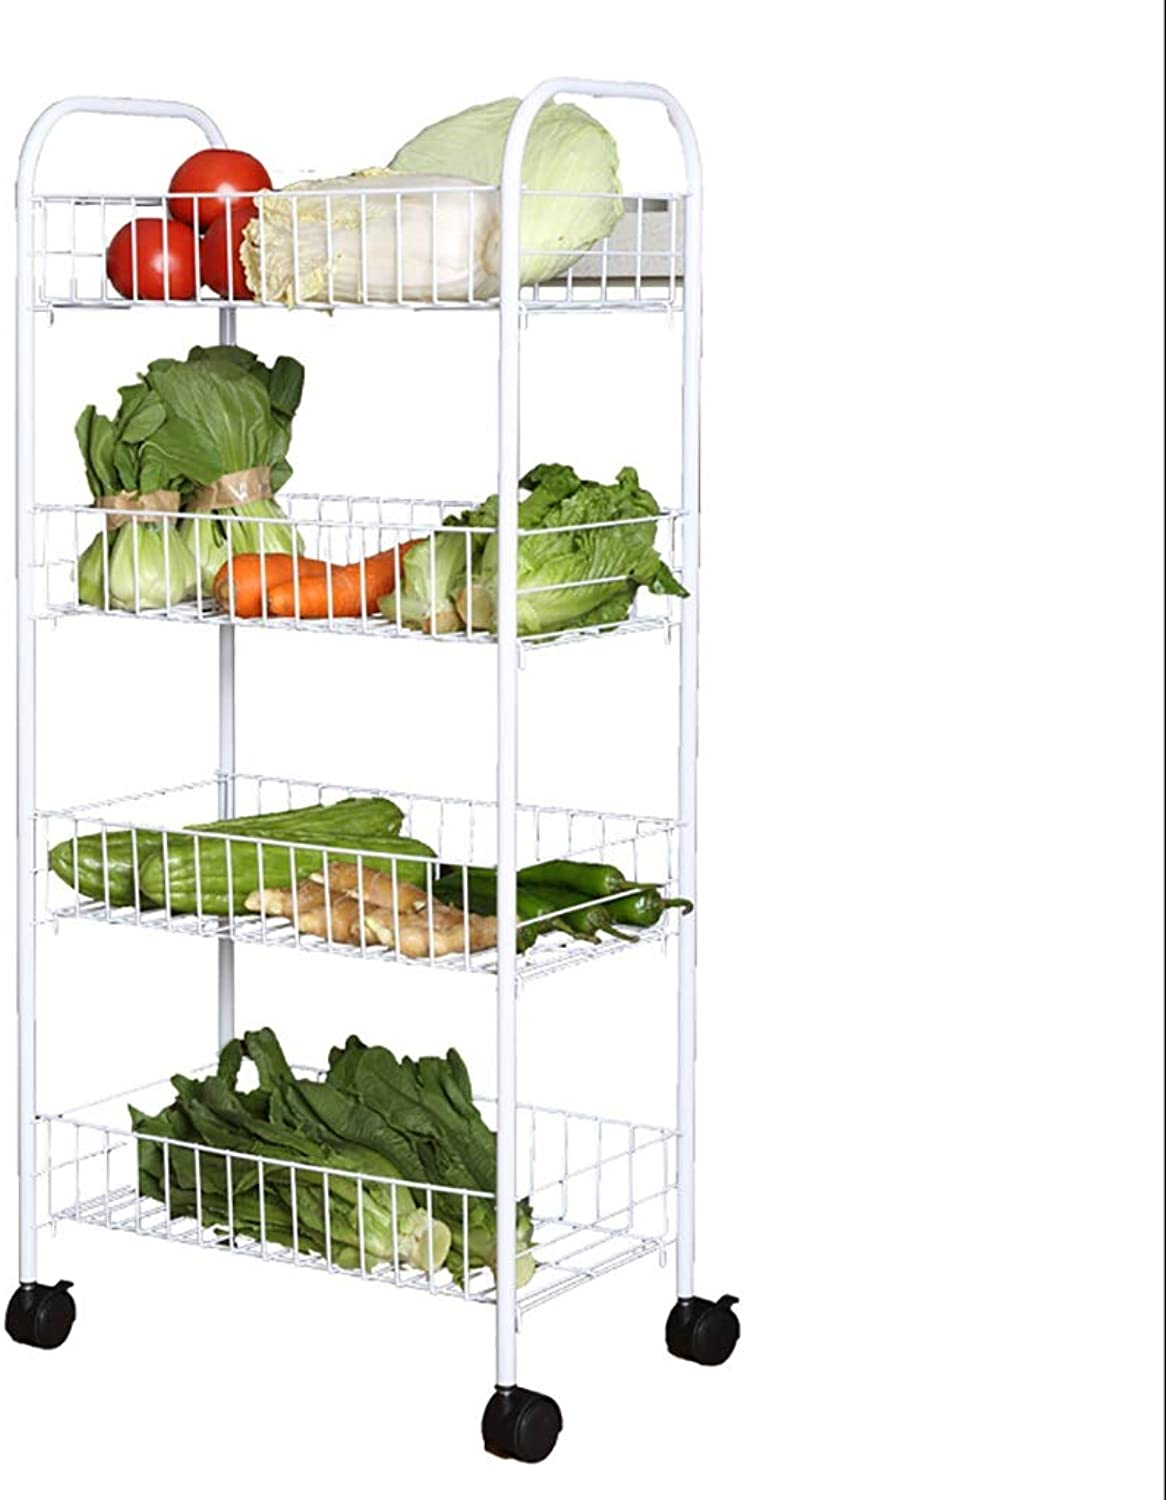 4 Tier Kitchen Storage Trolley with Wheels Carbon Steel Fruit Vegetable Rack for Bathroom Multifunction Organizing White (Size   35  20  90cm)